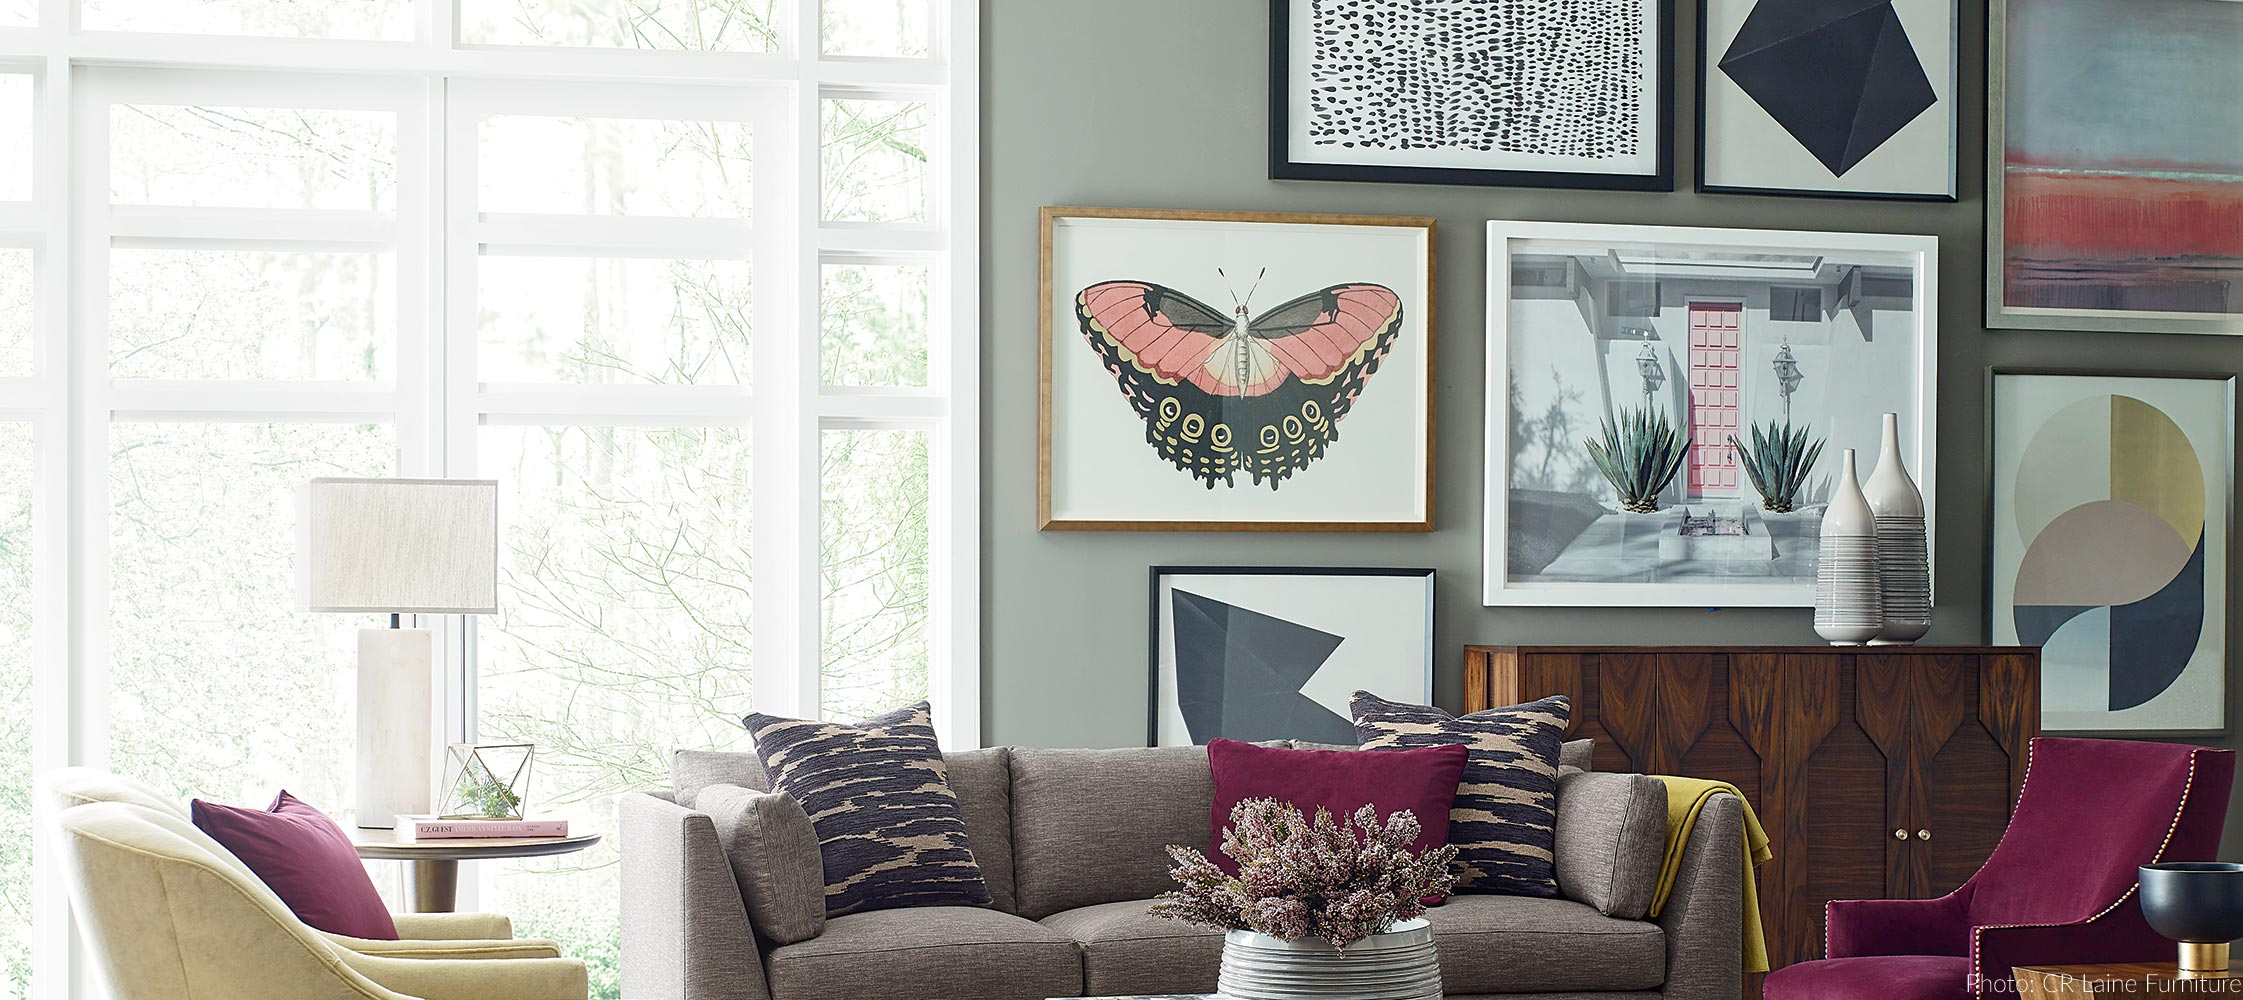 Commercial, Retail & Hospitality Wall Décor | Wendoverart Throughout 3 Piece Capri Butterfly Wall Decor Sets (View 20 of 30)